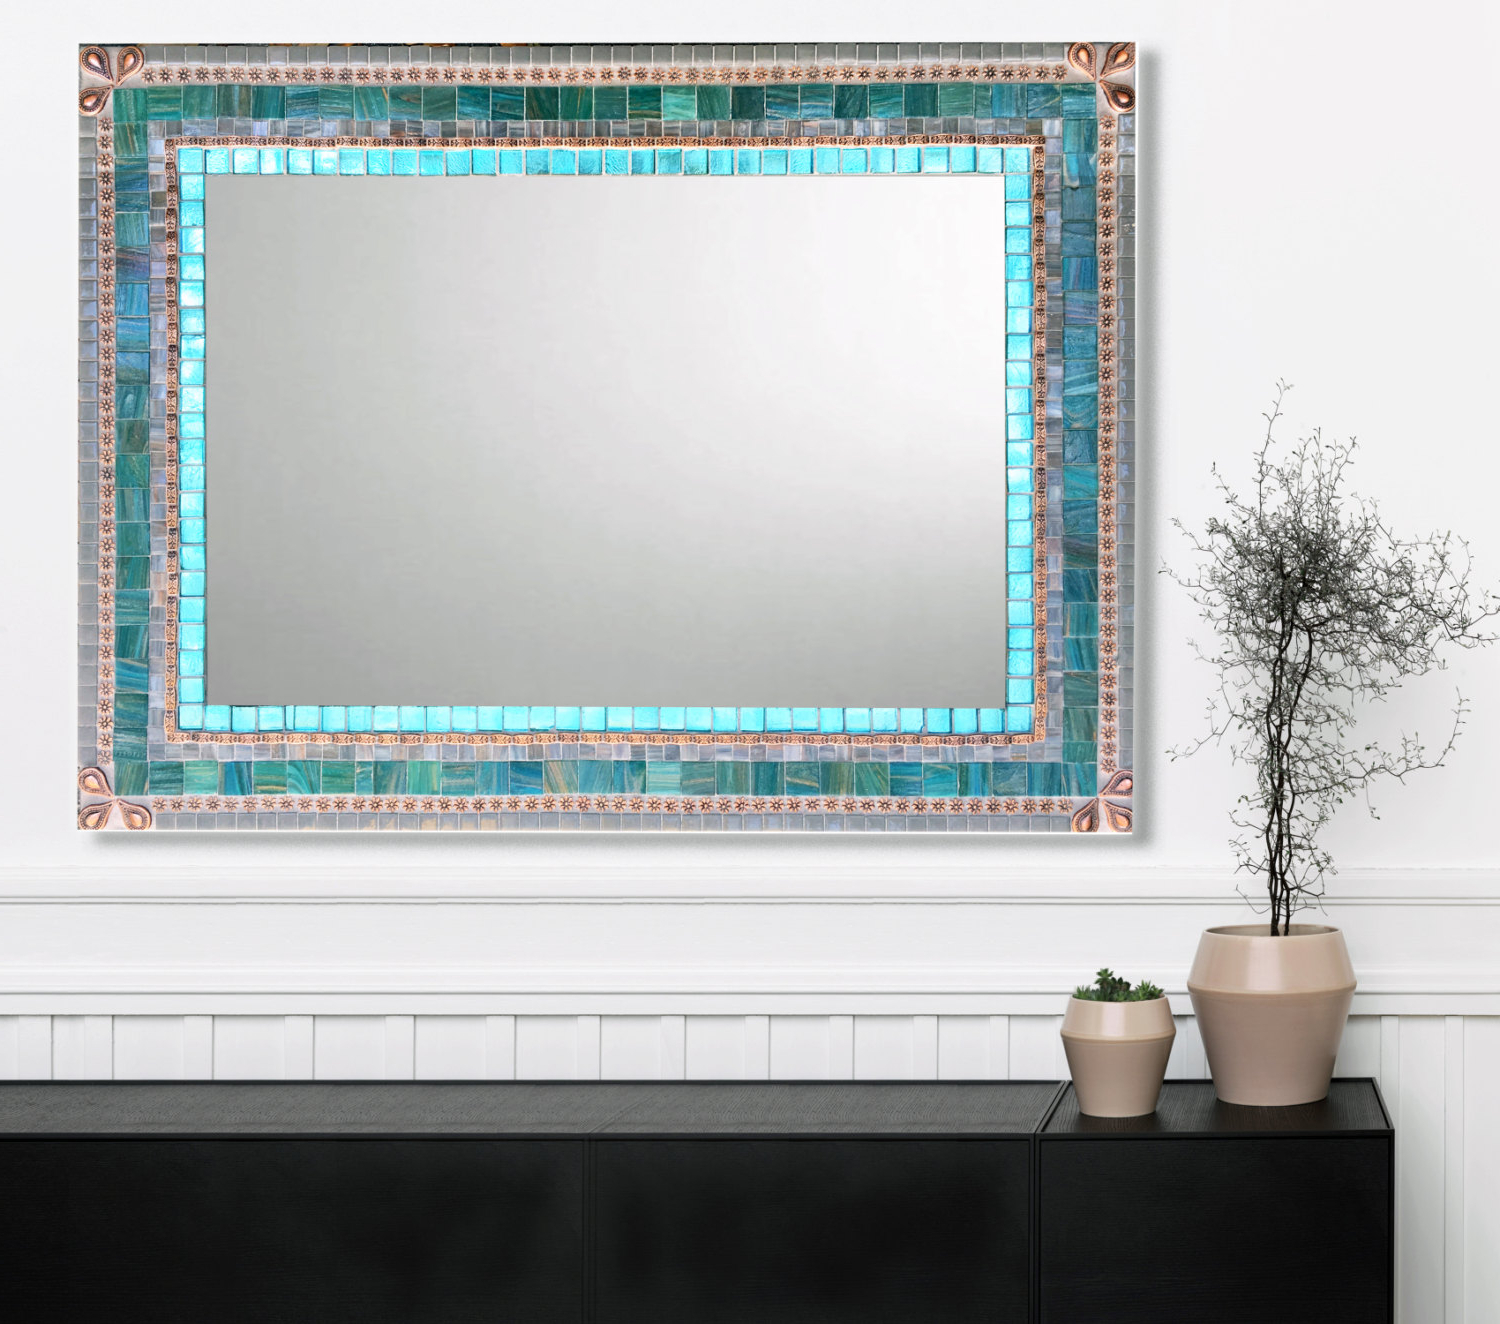 Popular Aqua Wall Mirrors In Large Wall Mirror, Mosaic Mirror, Aqua Gray Copper, Bathroom Decor, Mirror For Vanity (View 9 of 20)